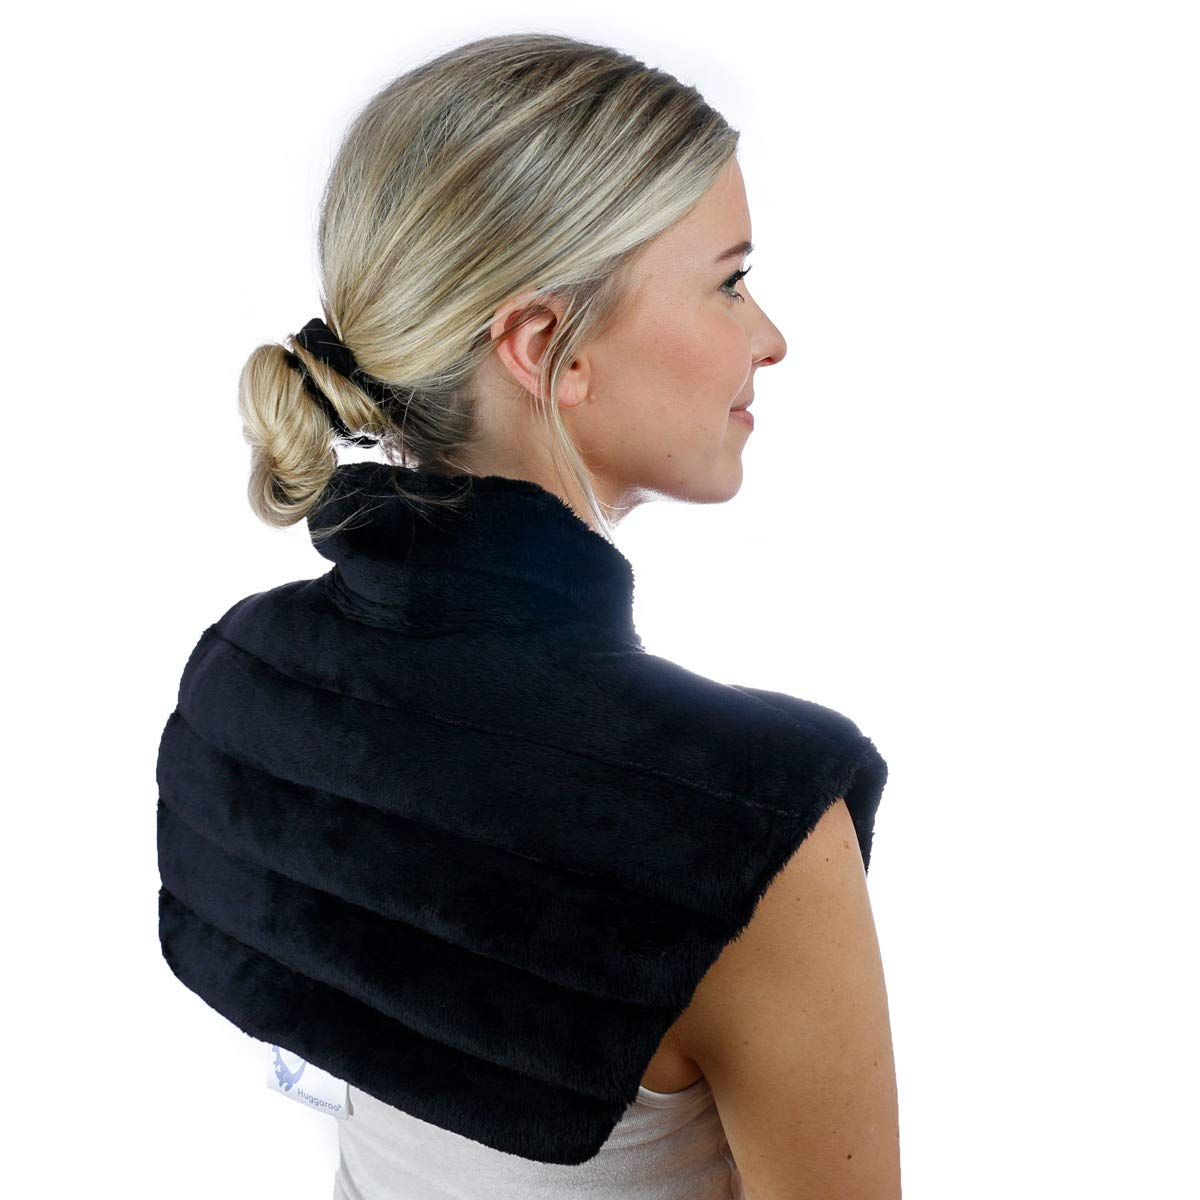 Huggaroo Weighted Microwavable Neck Wrap - UNSCENTED | Moist Heating Pad | Hot or Cold Compress for Neck Pain, Shoulder Pain, Migraines, Stress Relief (Black) by Huggaroo